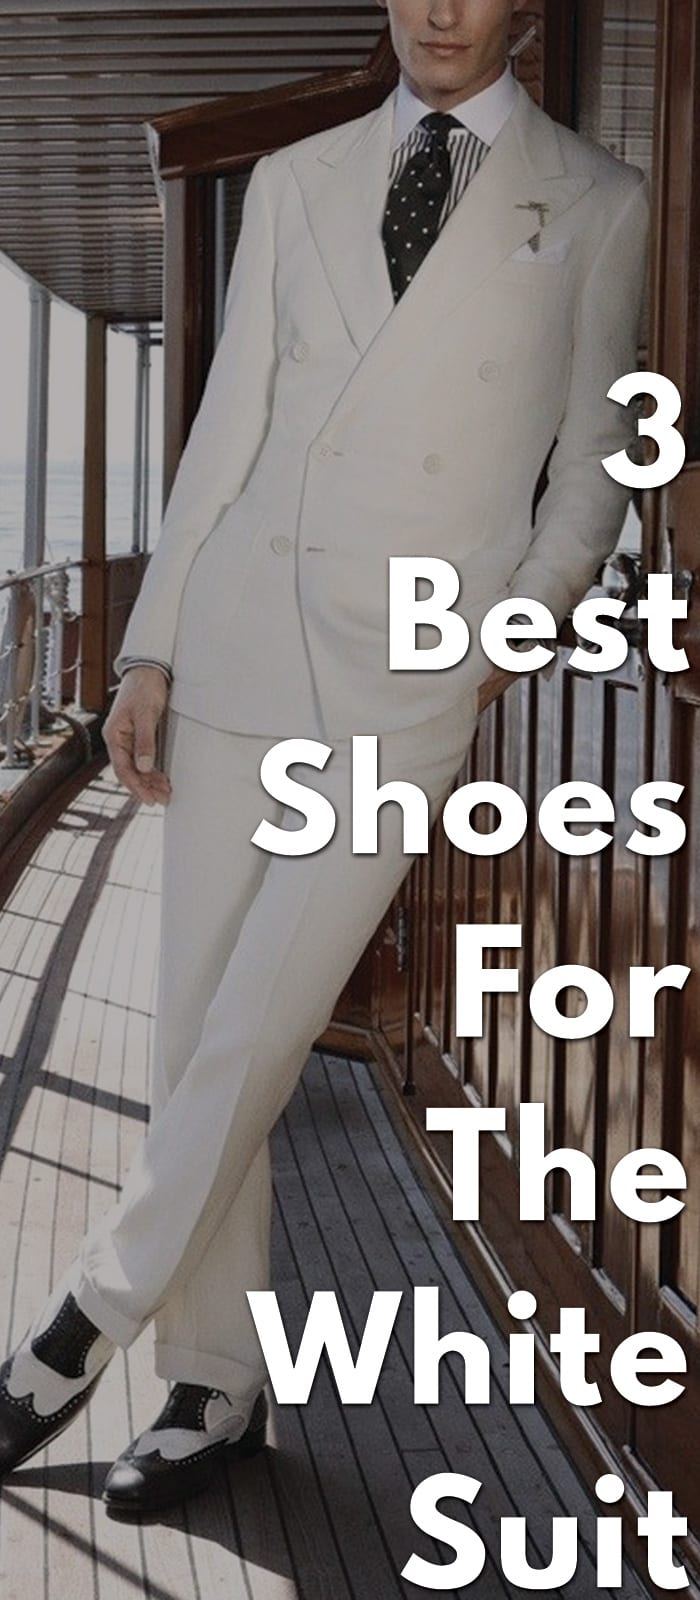 3-Best-Shoes-For-The-White-Suit